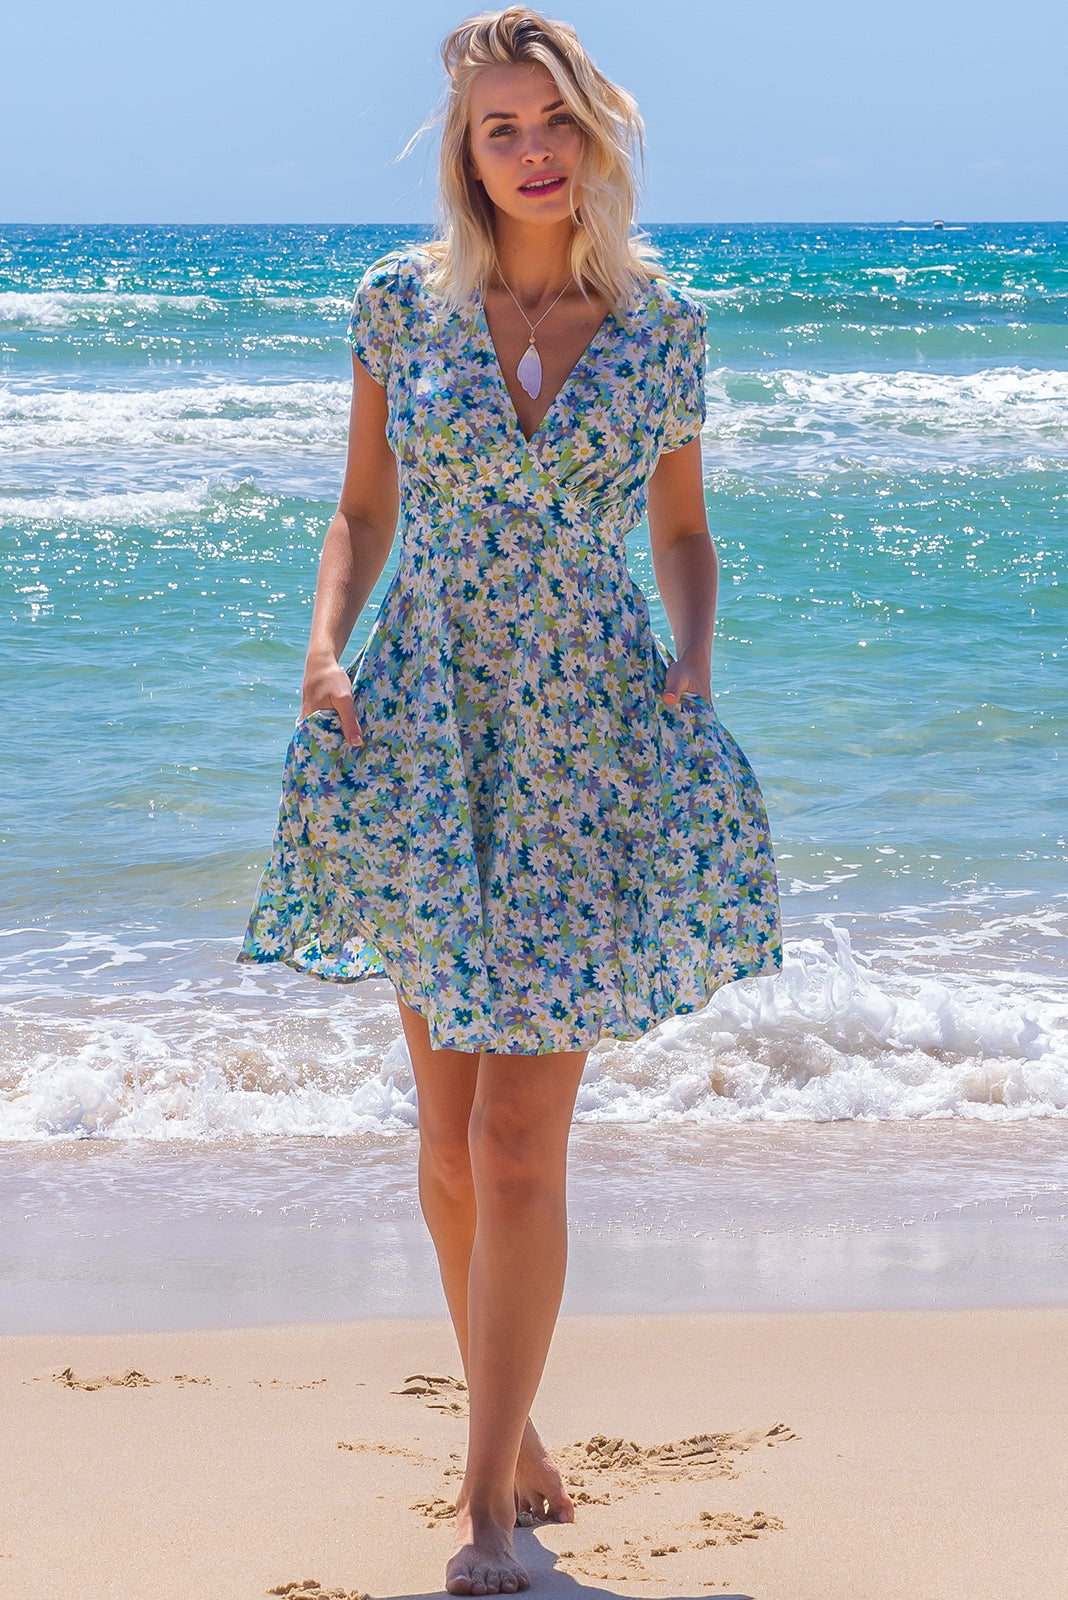 The Maggie May Celestial Blues Dress features waist features comfortable elastic shirring at back, cap sleeves, side pockets, flirty skirt draping from underneath bust and 100% in daisy print in blues and mints.